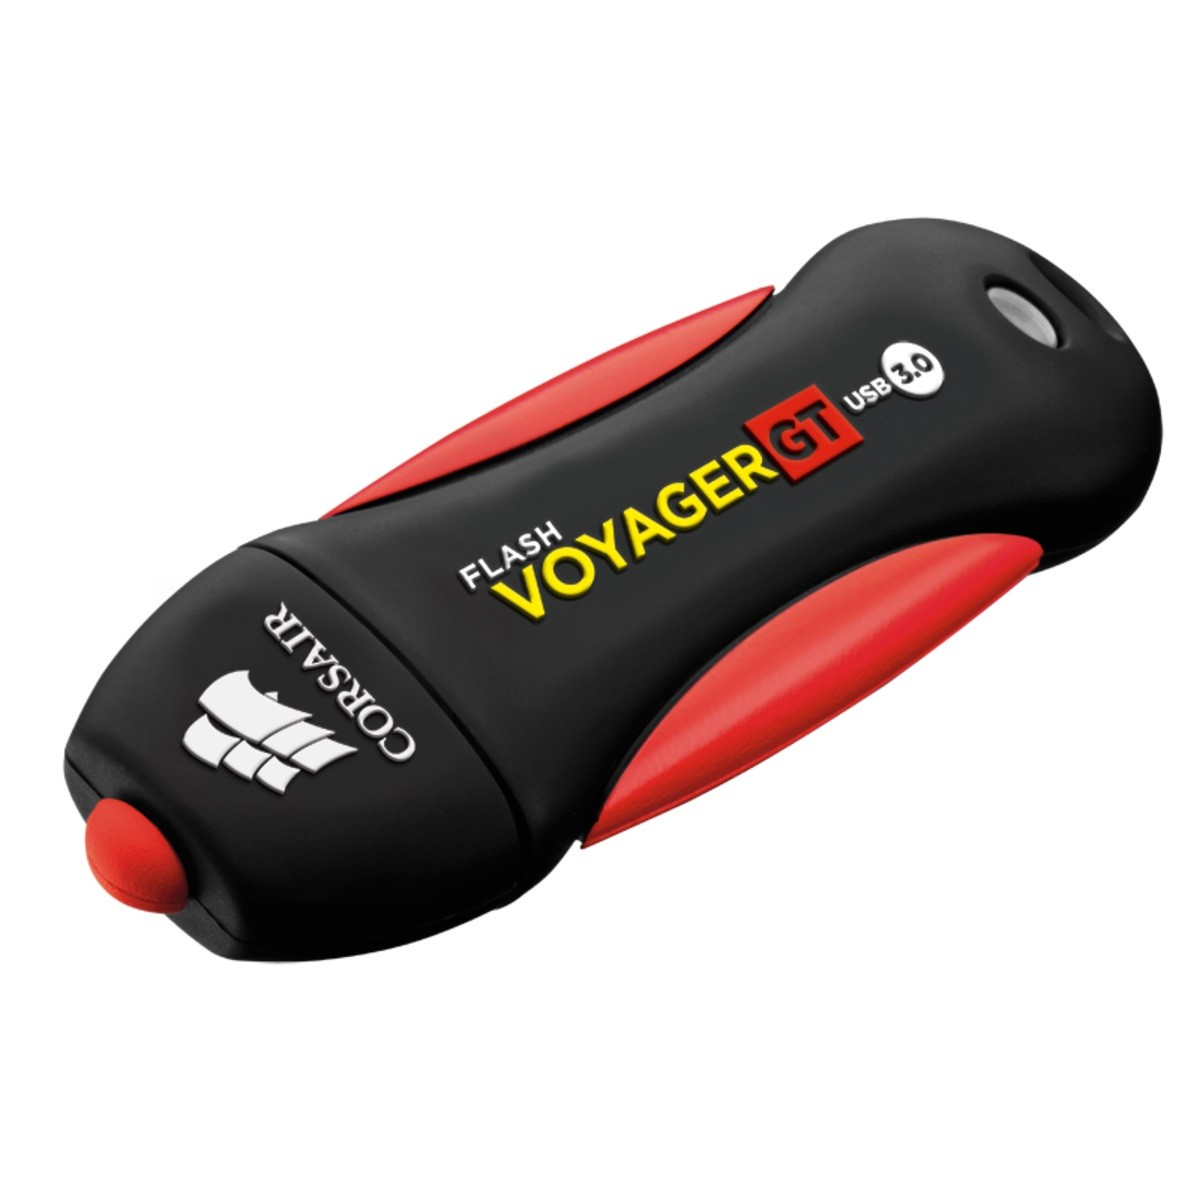 pendrive-flash-voyager-gt-512gb-usb3-0-390240-mbs